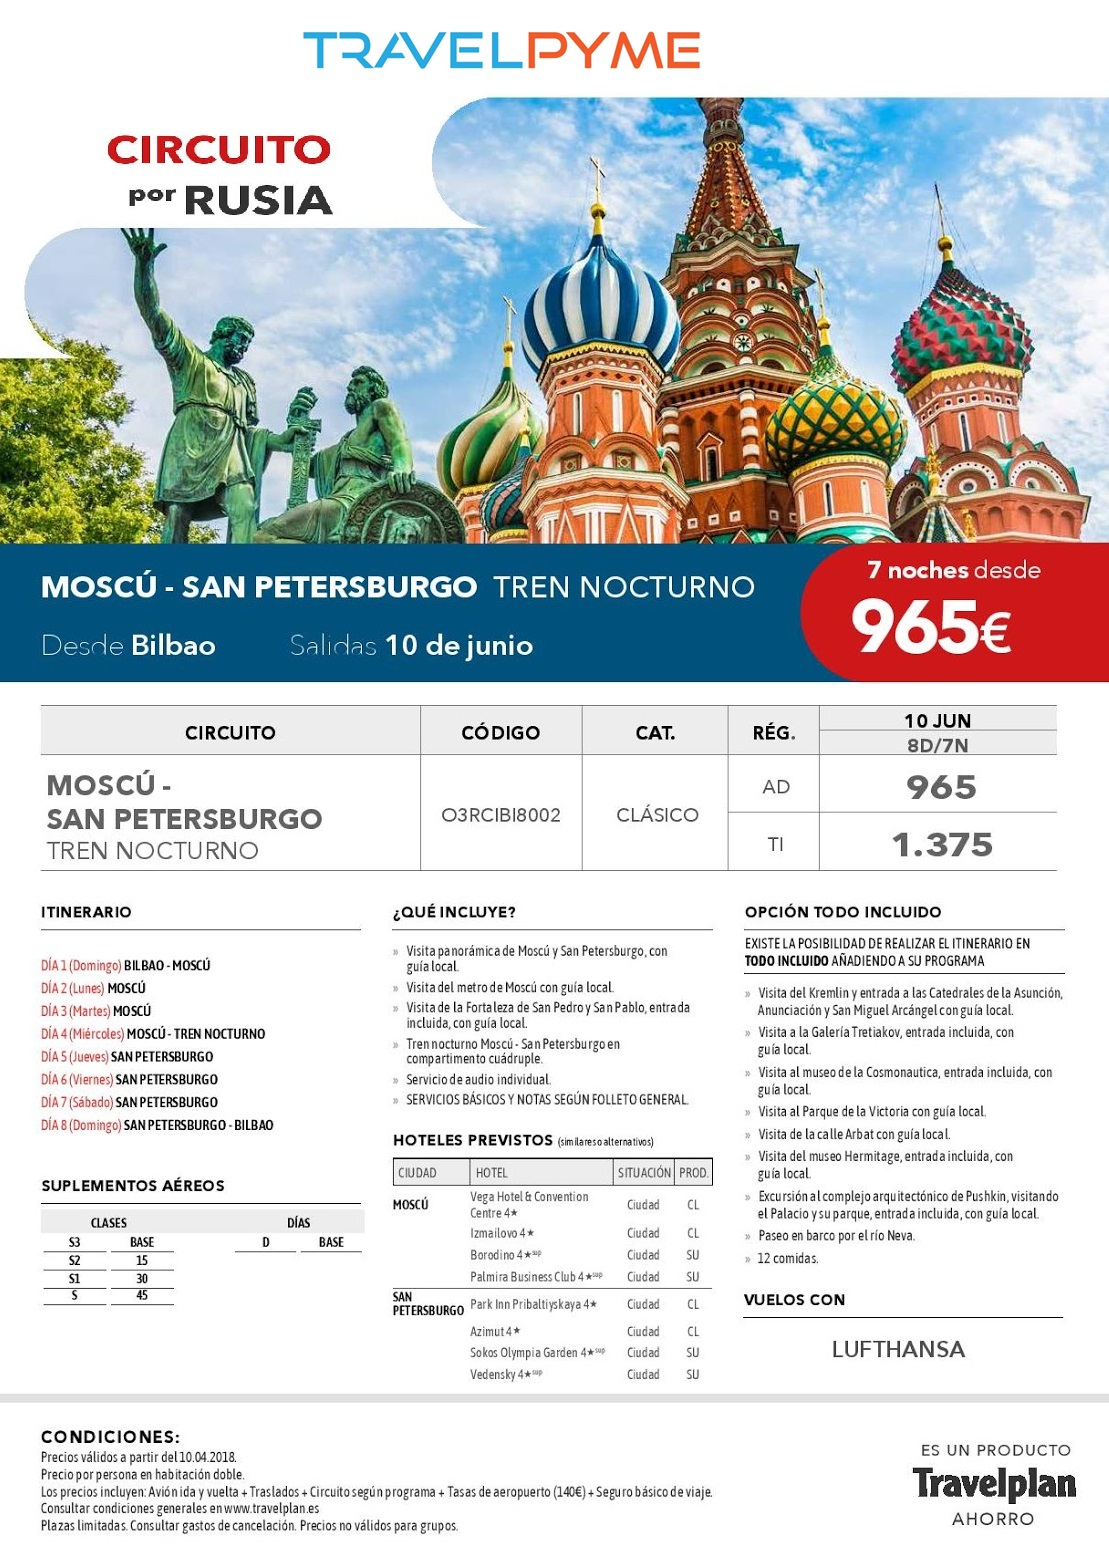 MOSCU-SAN PETERSBURGO 10JUN18 BIO